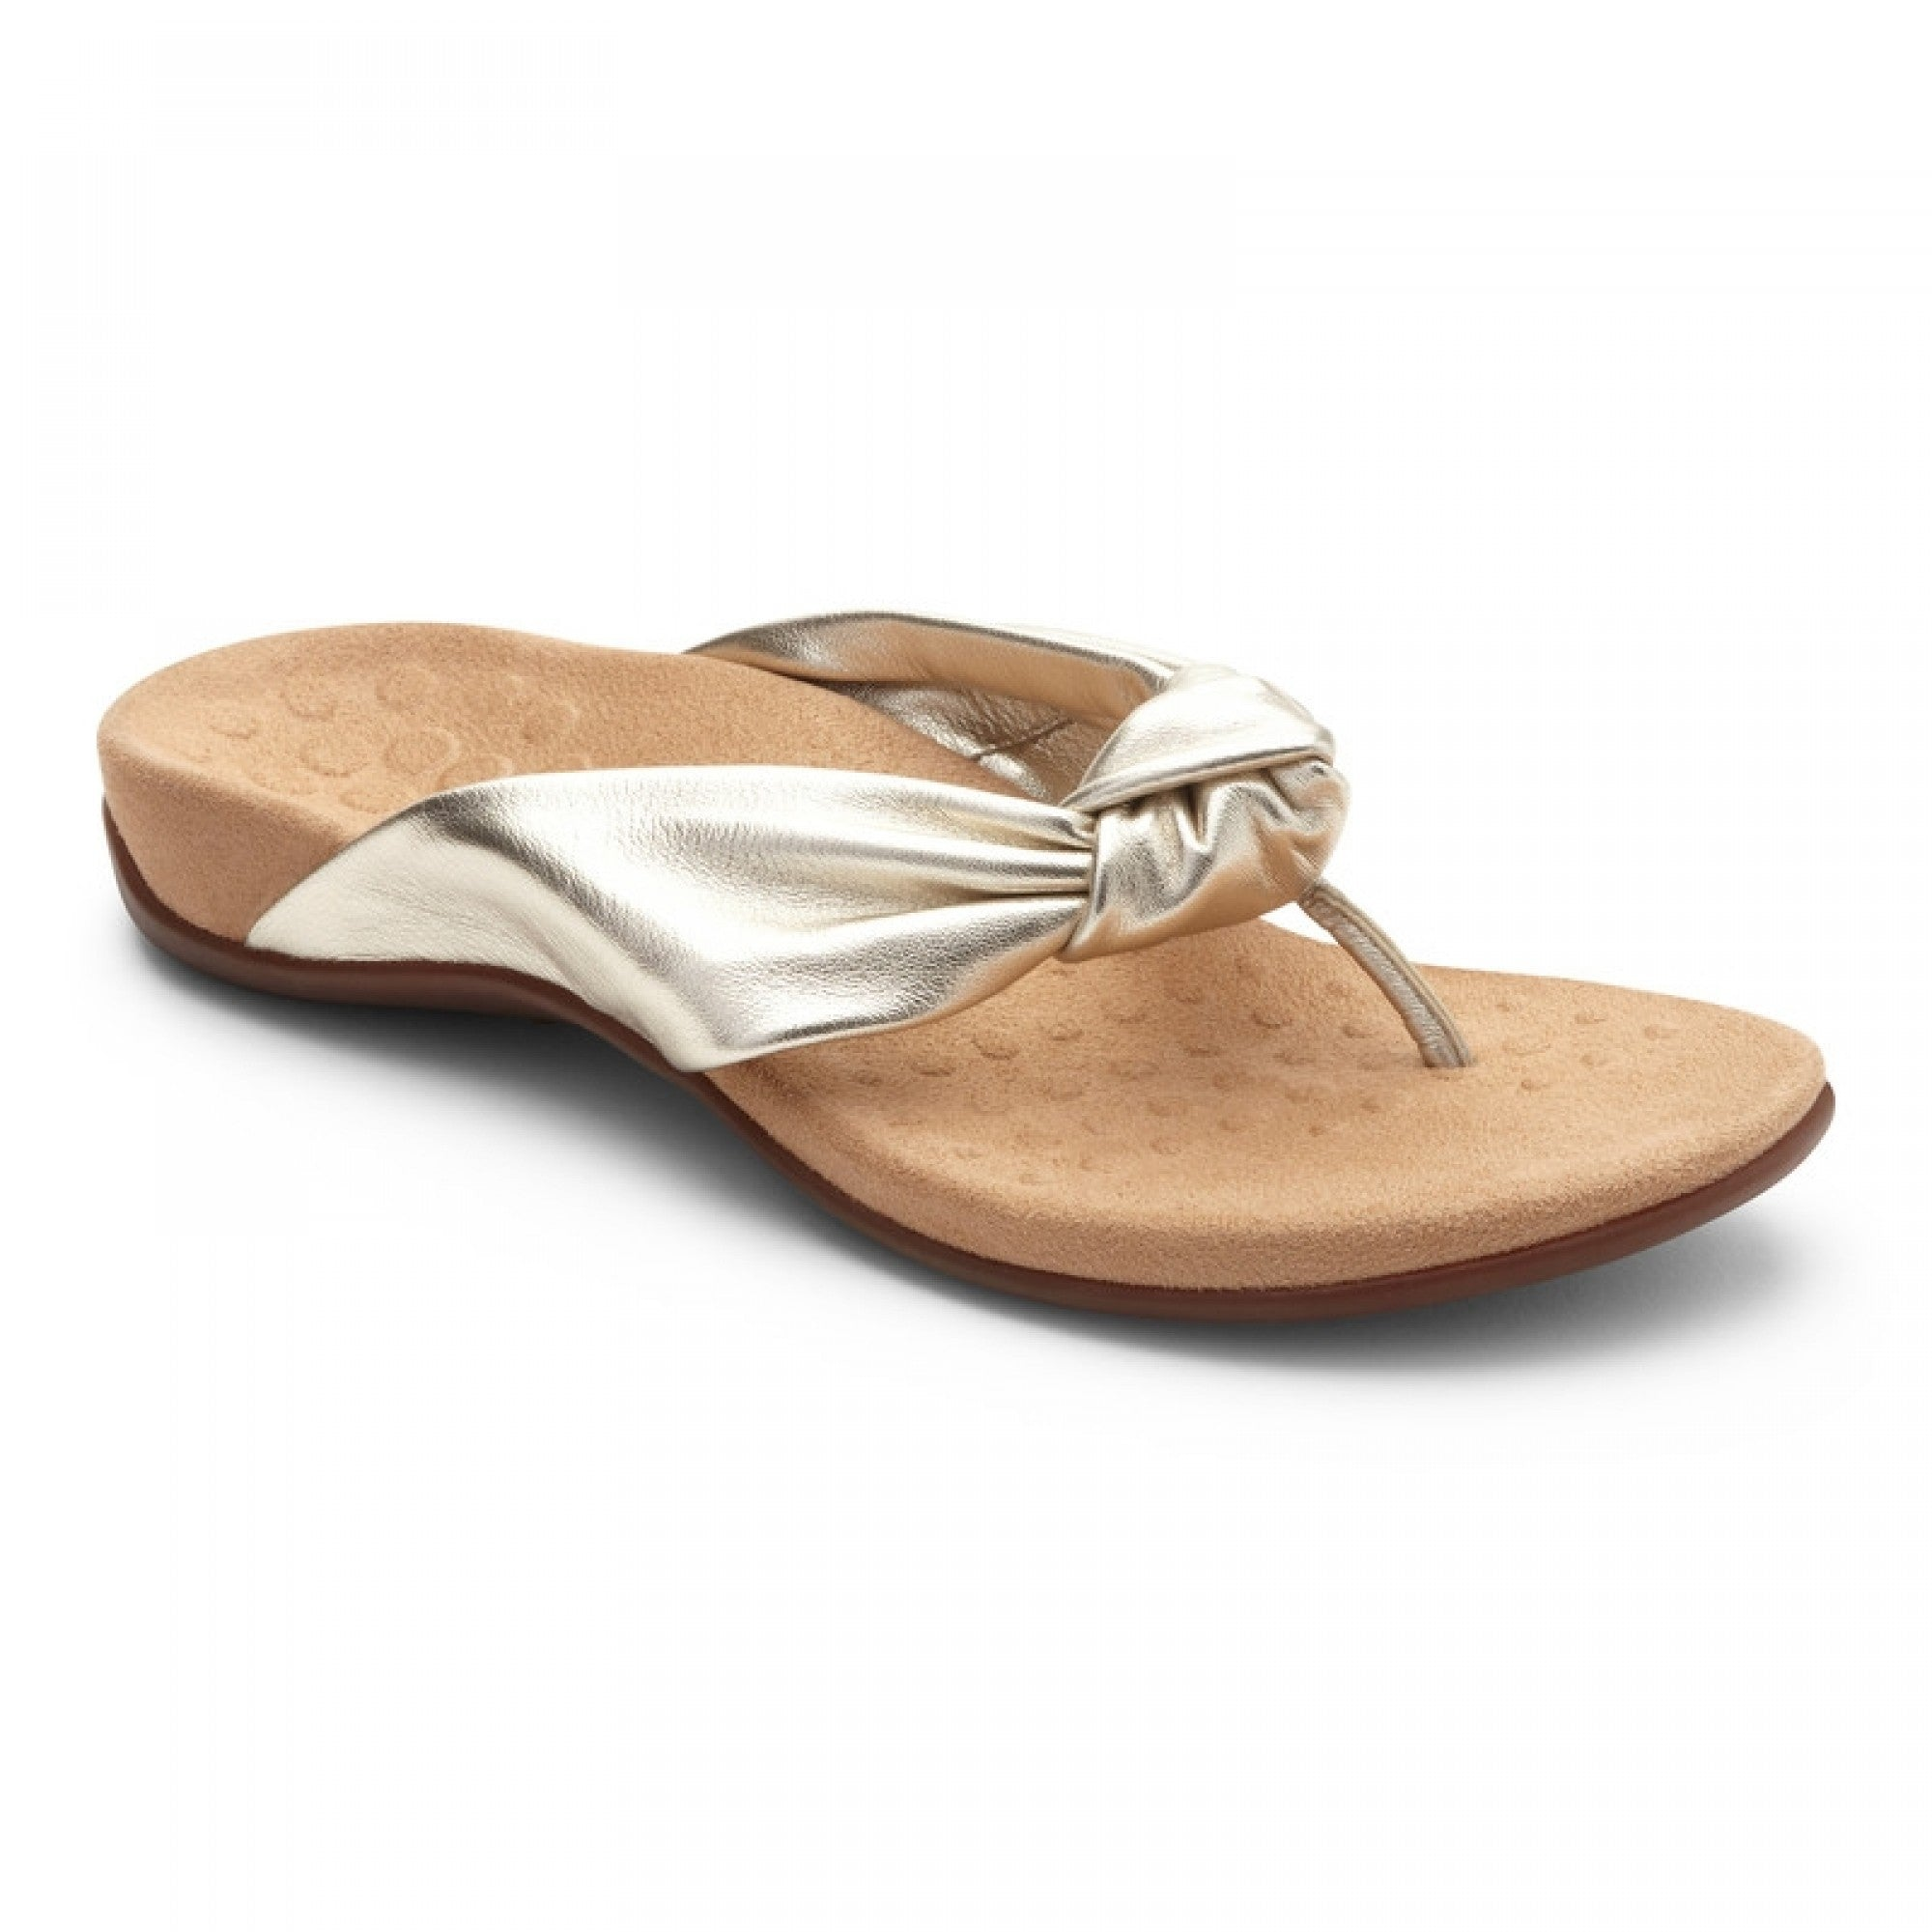 Women's Vionic Pippa Toe Post Sandal